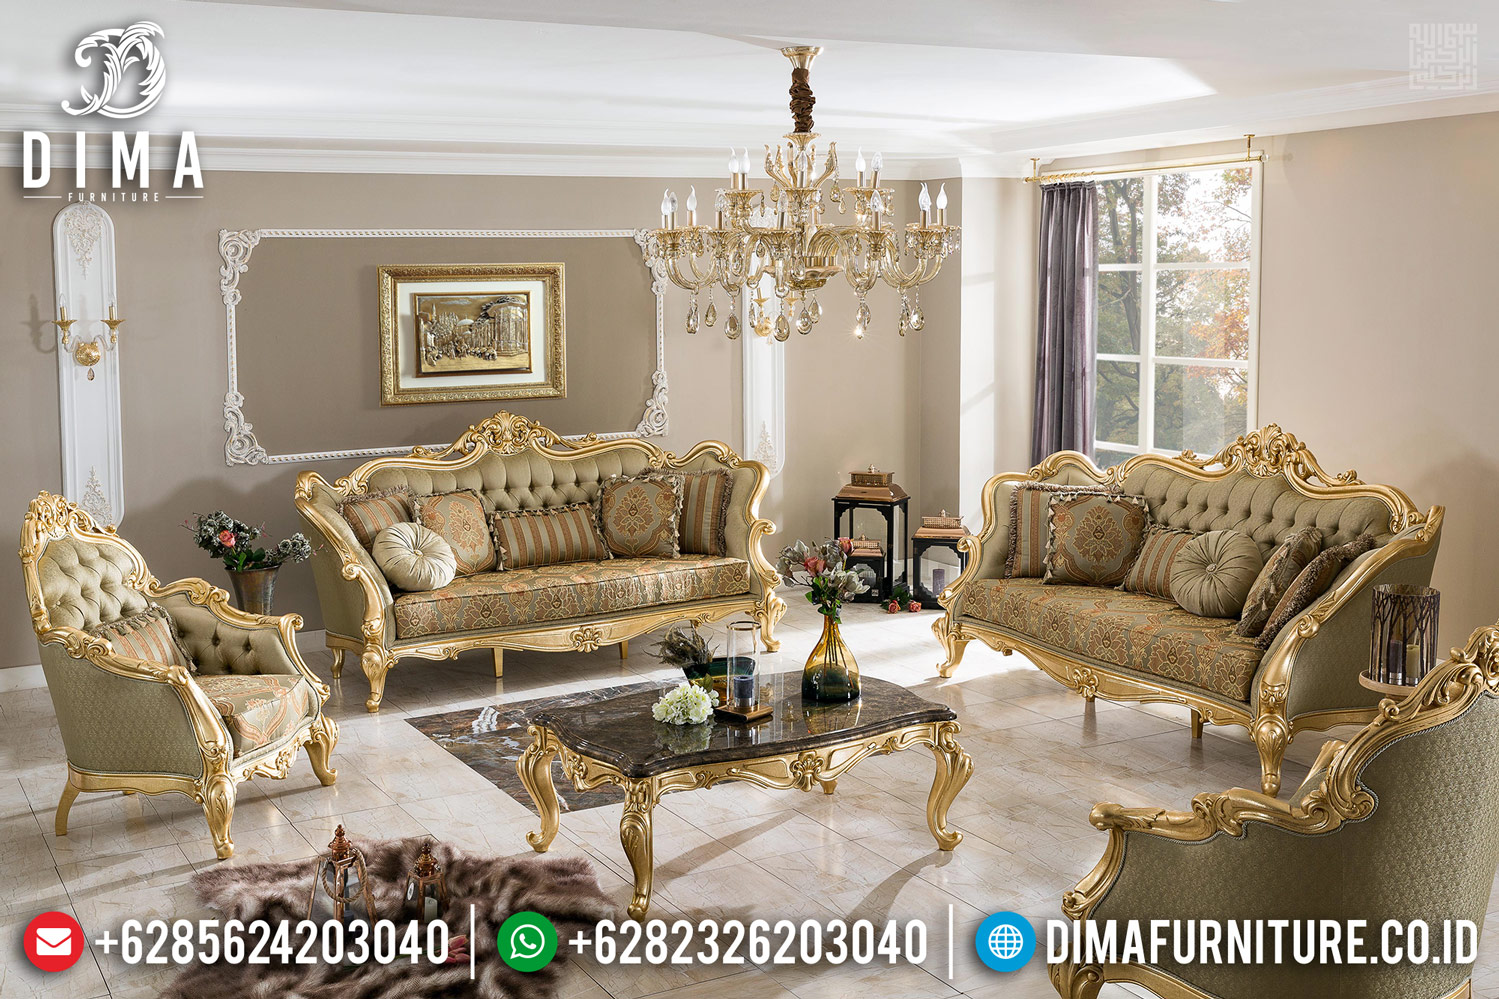 Sofa Tamu Mewah Europe Kingdom Ukiran Barocco Design Luxury Furniture Jepara TTJ-0446